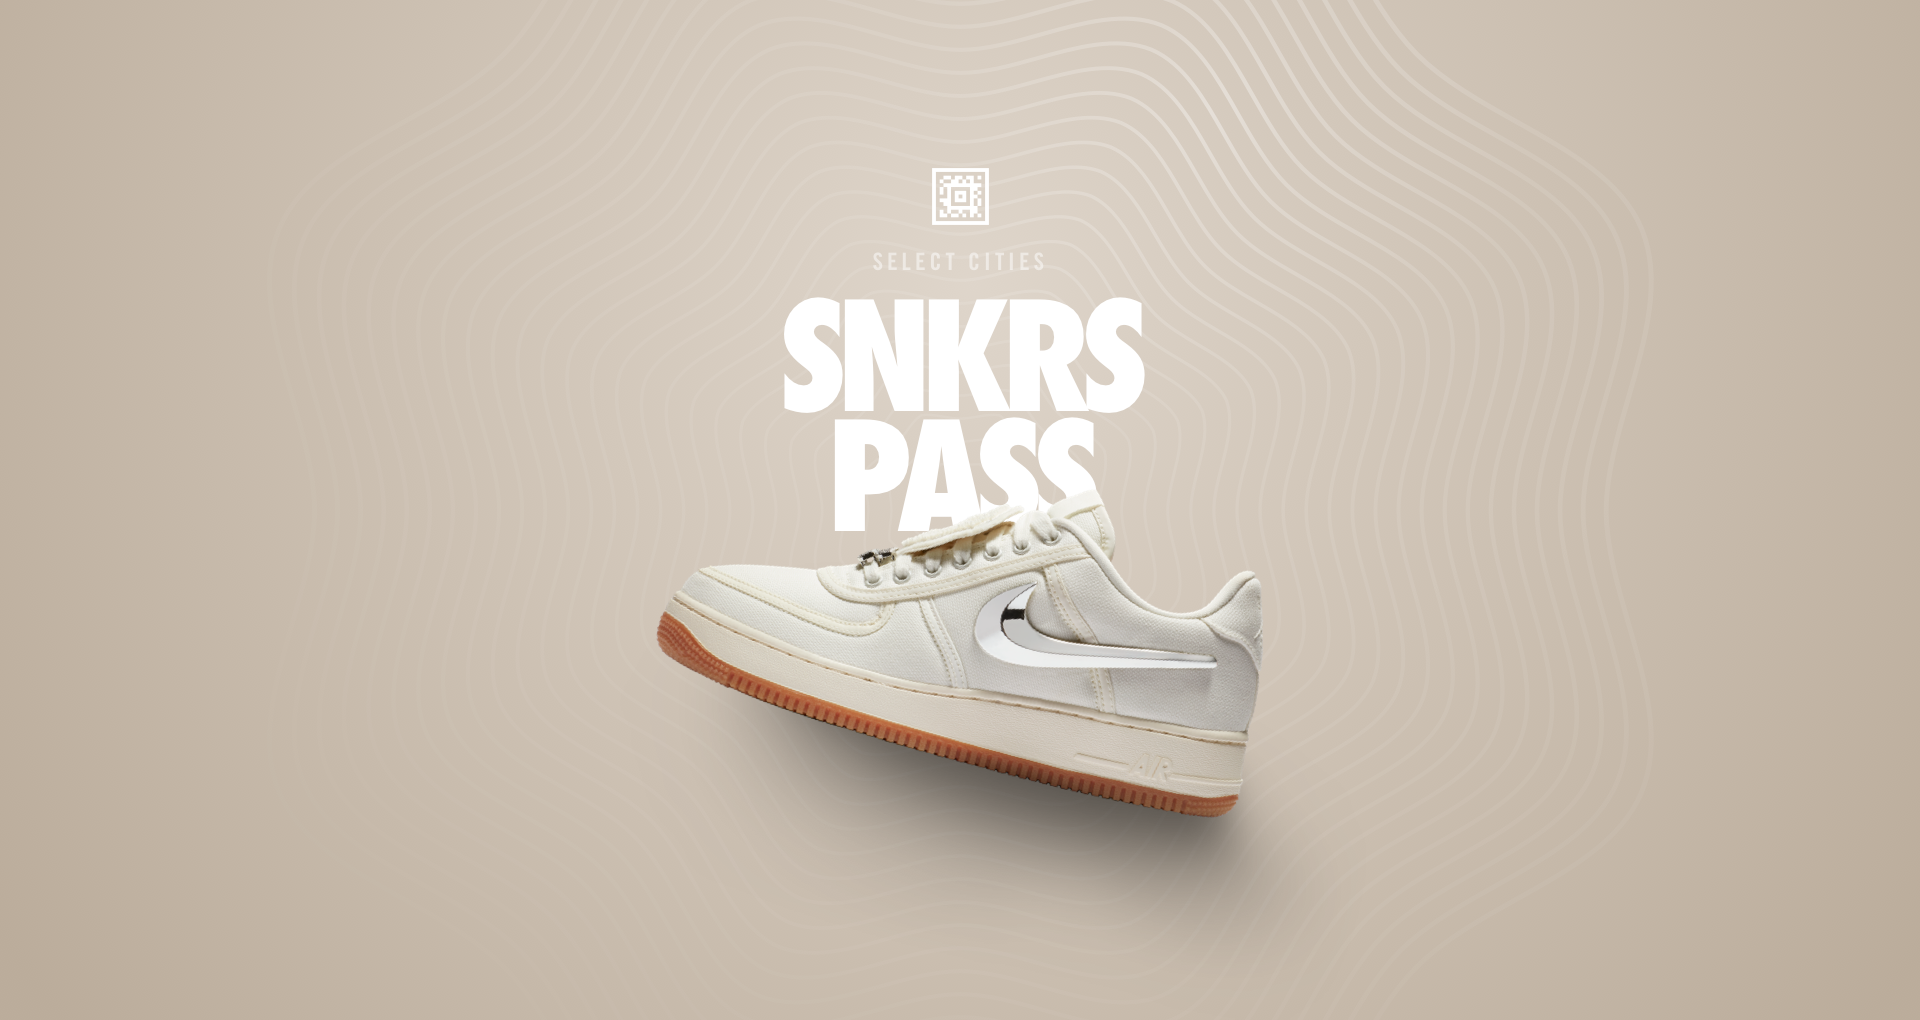 Nike Air Force 1 Low 'Travis Scott' SNKRS Pass Select Cites